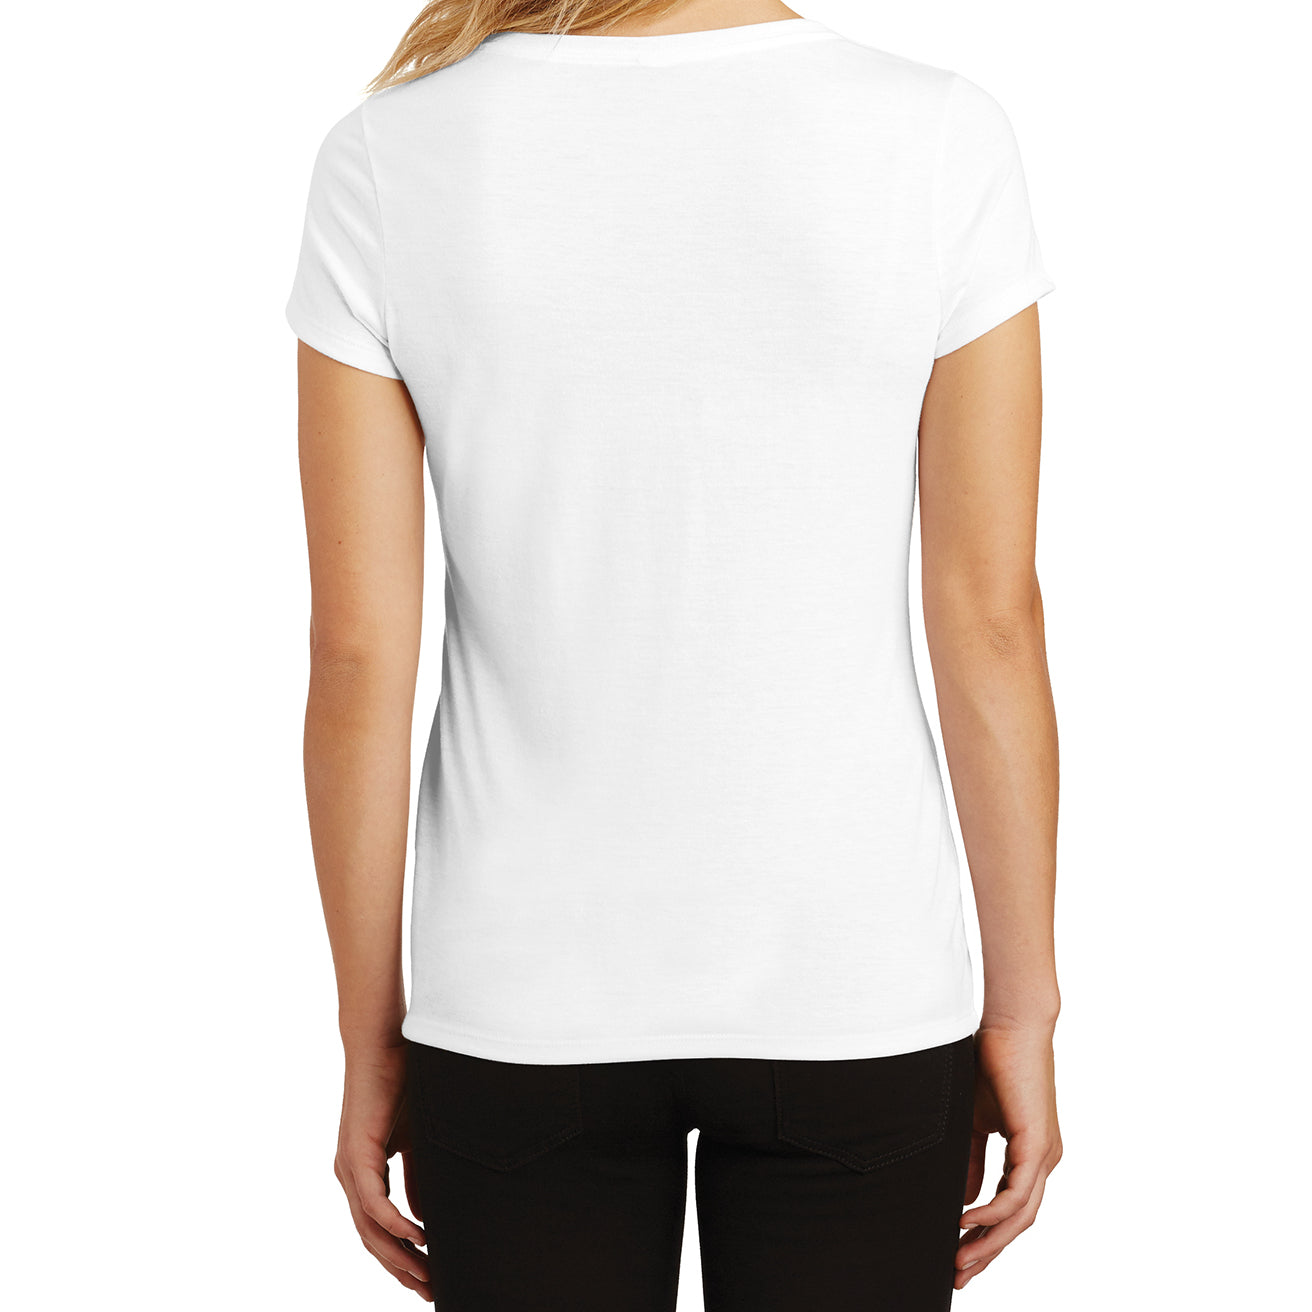 Women's Perfect Tri V-Neck Tee - White - Back